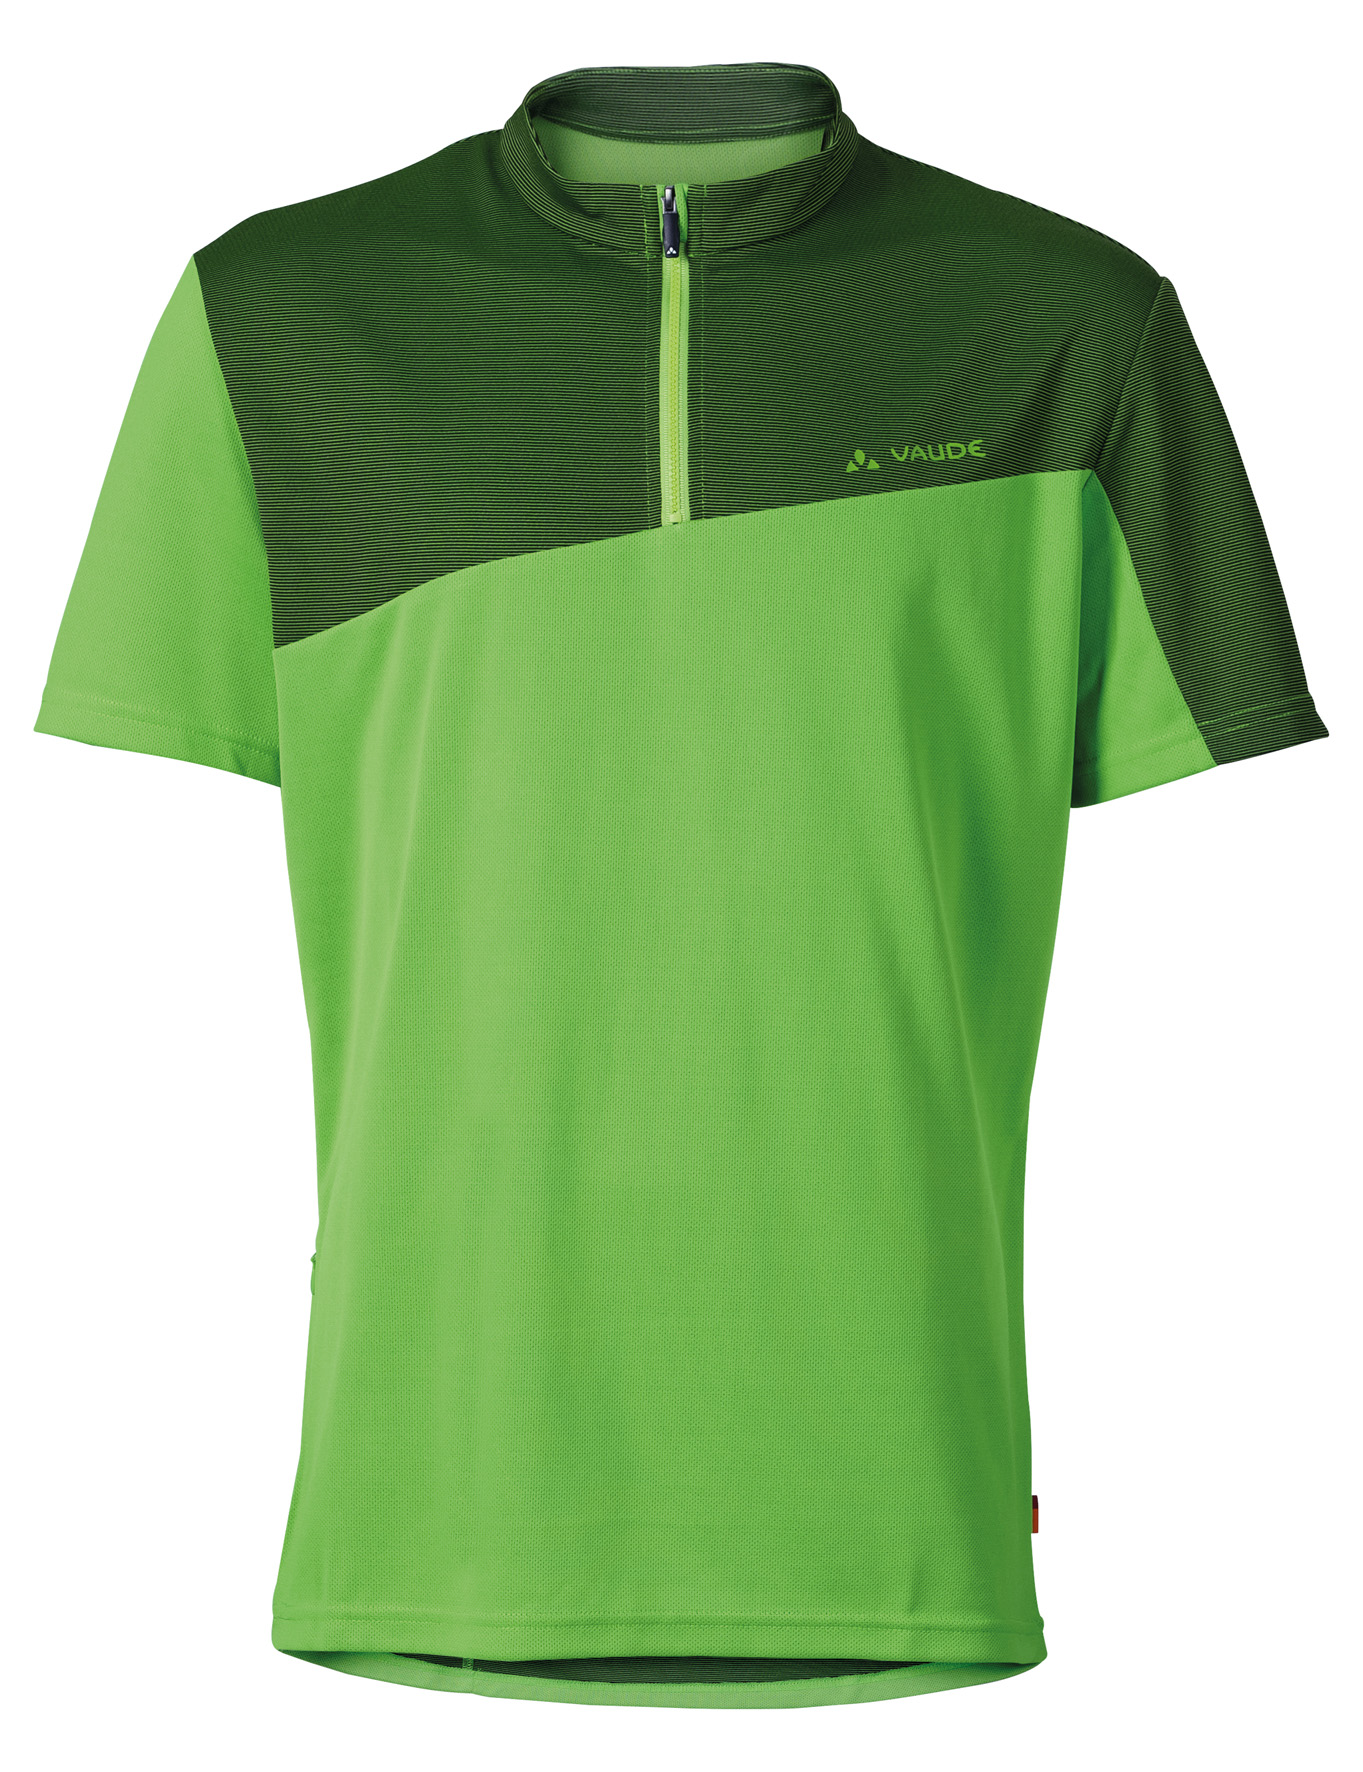 VAUDE Men´s Tremalzo Shirt II gooseberry Größe S - VAUDE Men´s Tremalzo Shirt II gooseberry Größe S